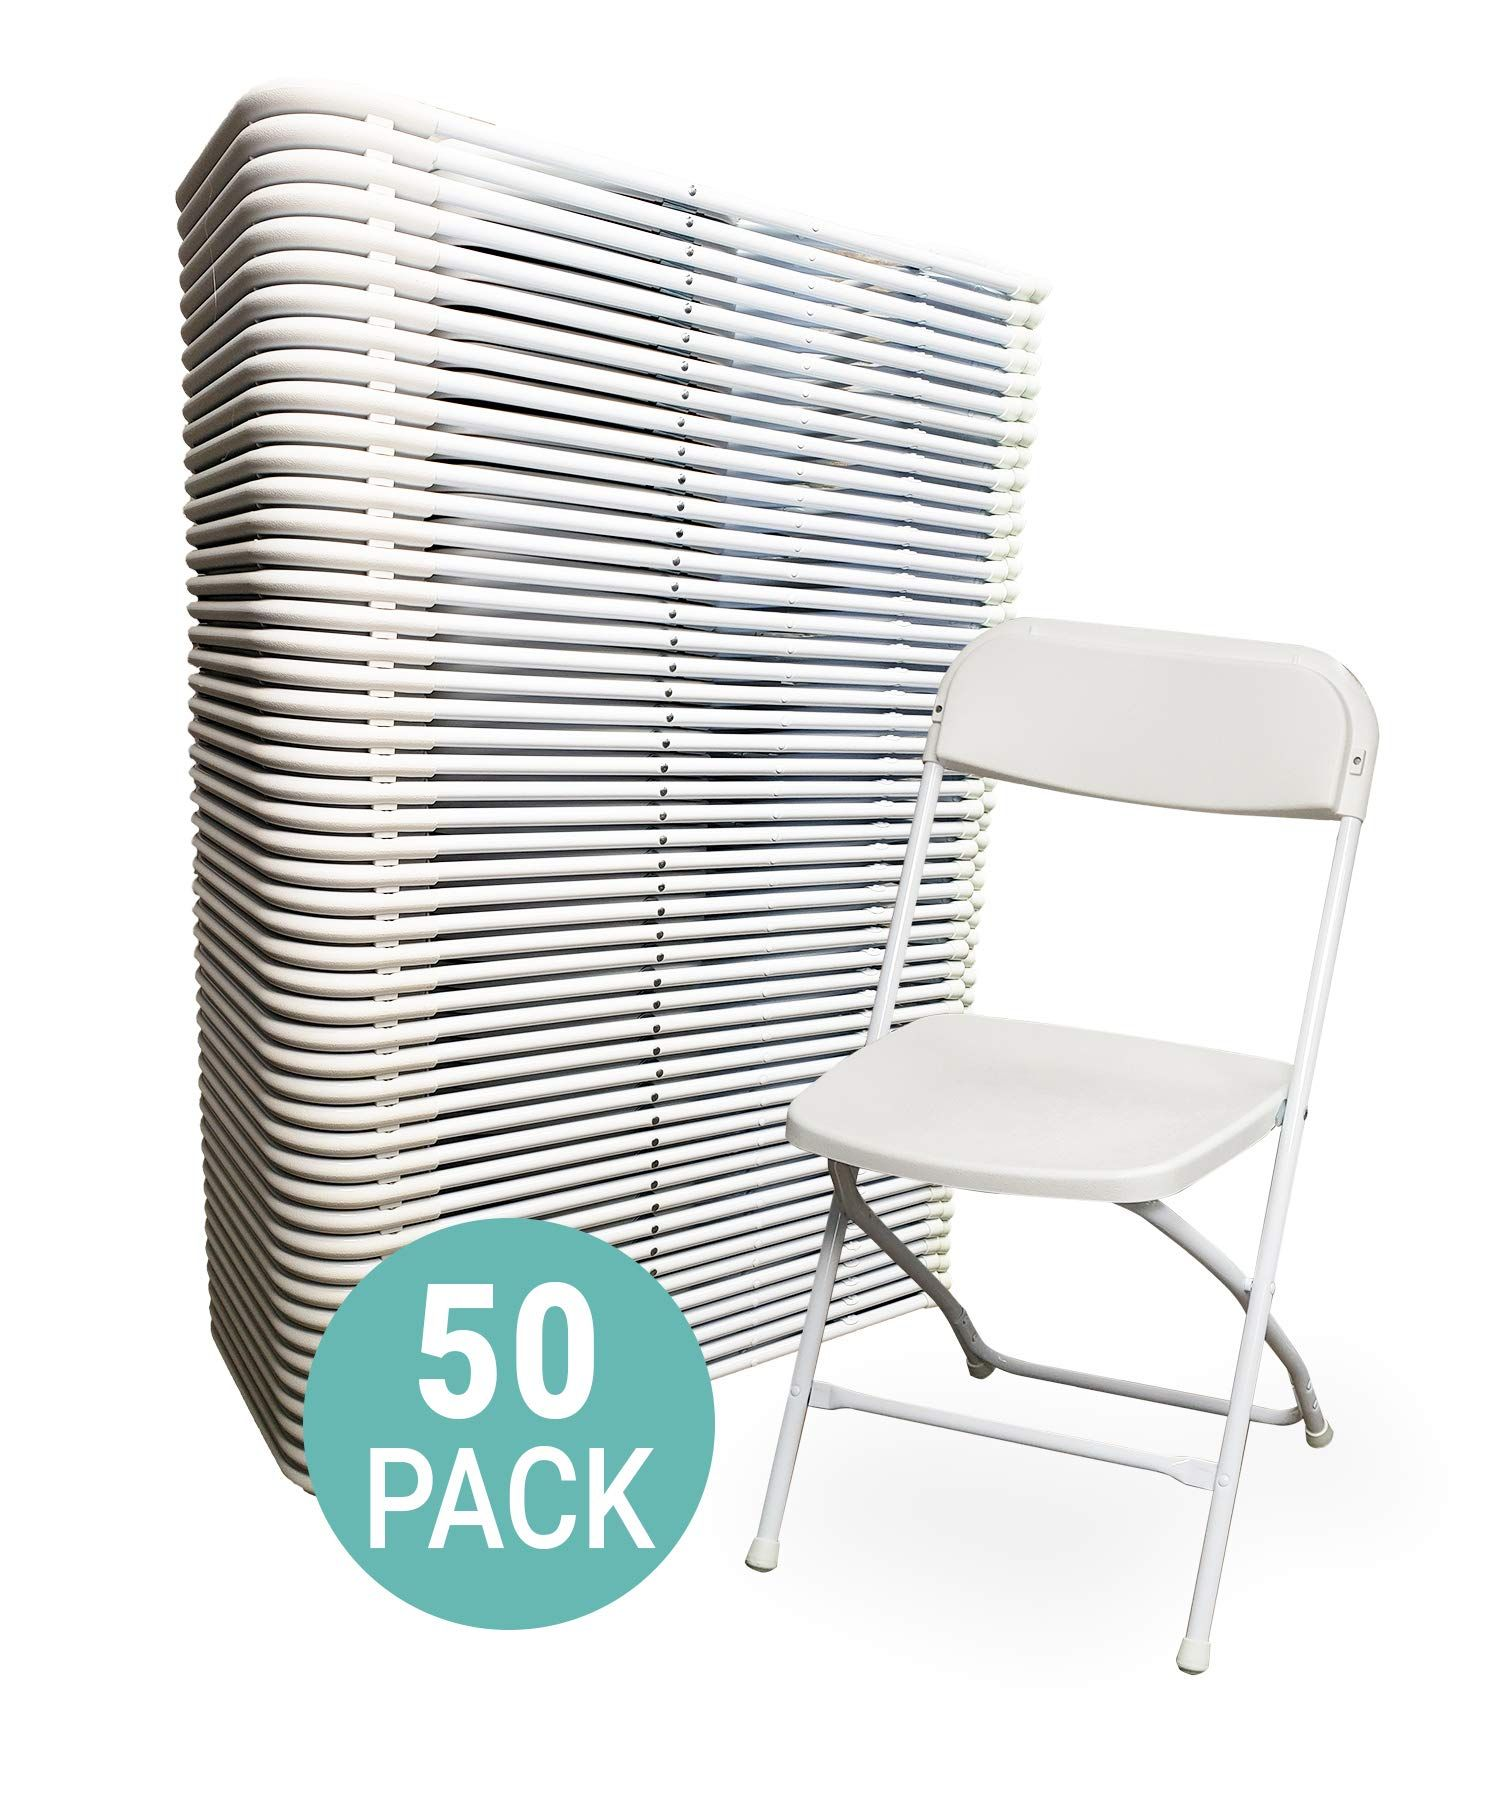 Eventstable Titanpro Plastic Folding Chair White 50 Pack